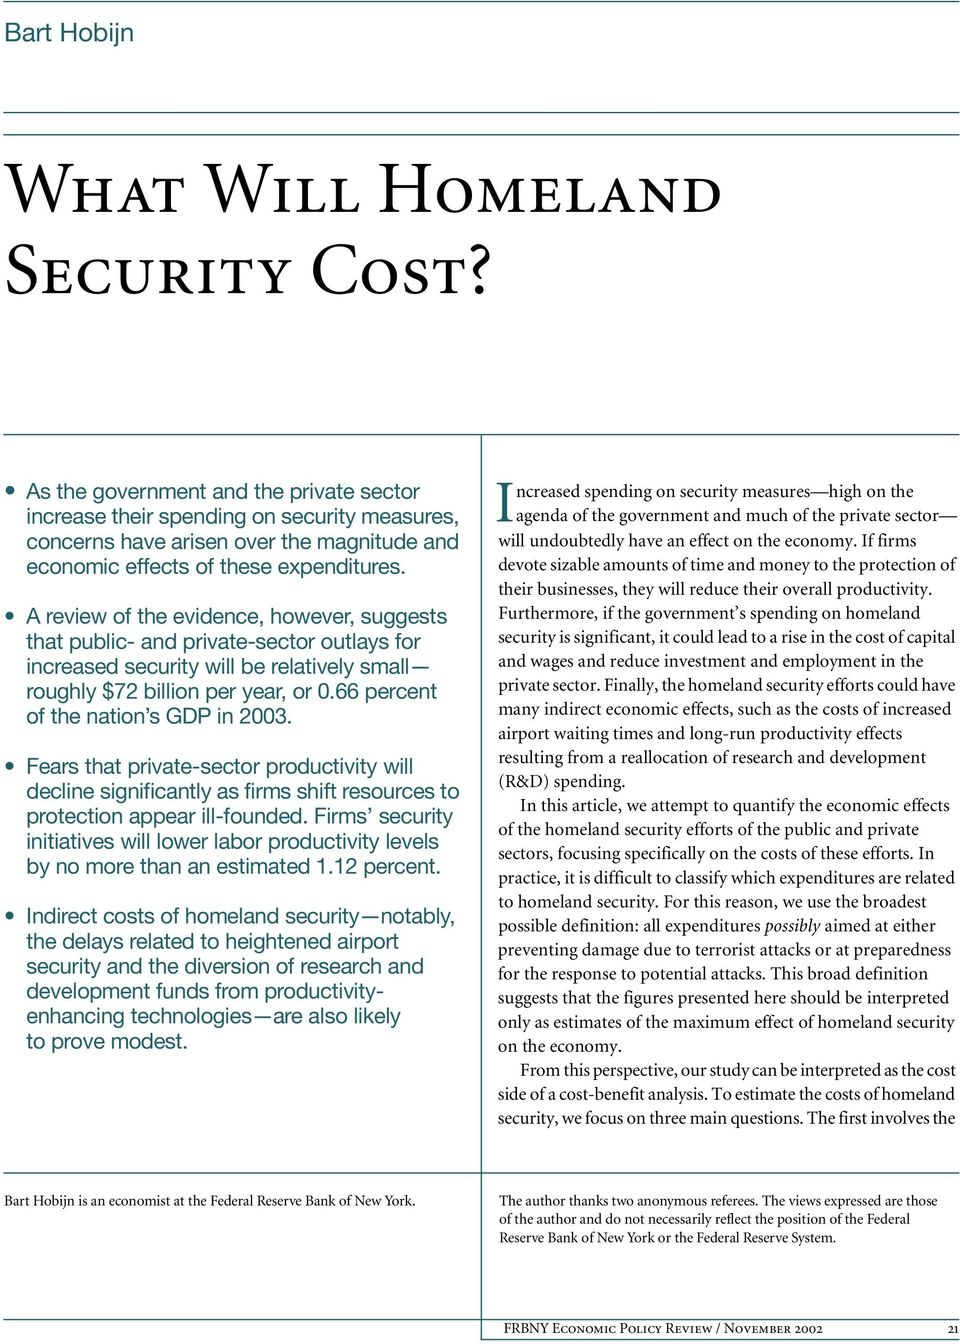 A review of the evidence, however, suggests that public- and private-sector outlays for increased security will be relatively small roughly $72 billion per year, or 0.